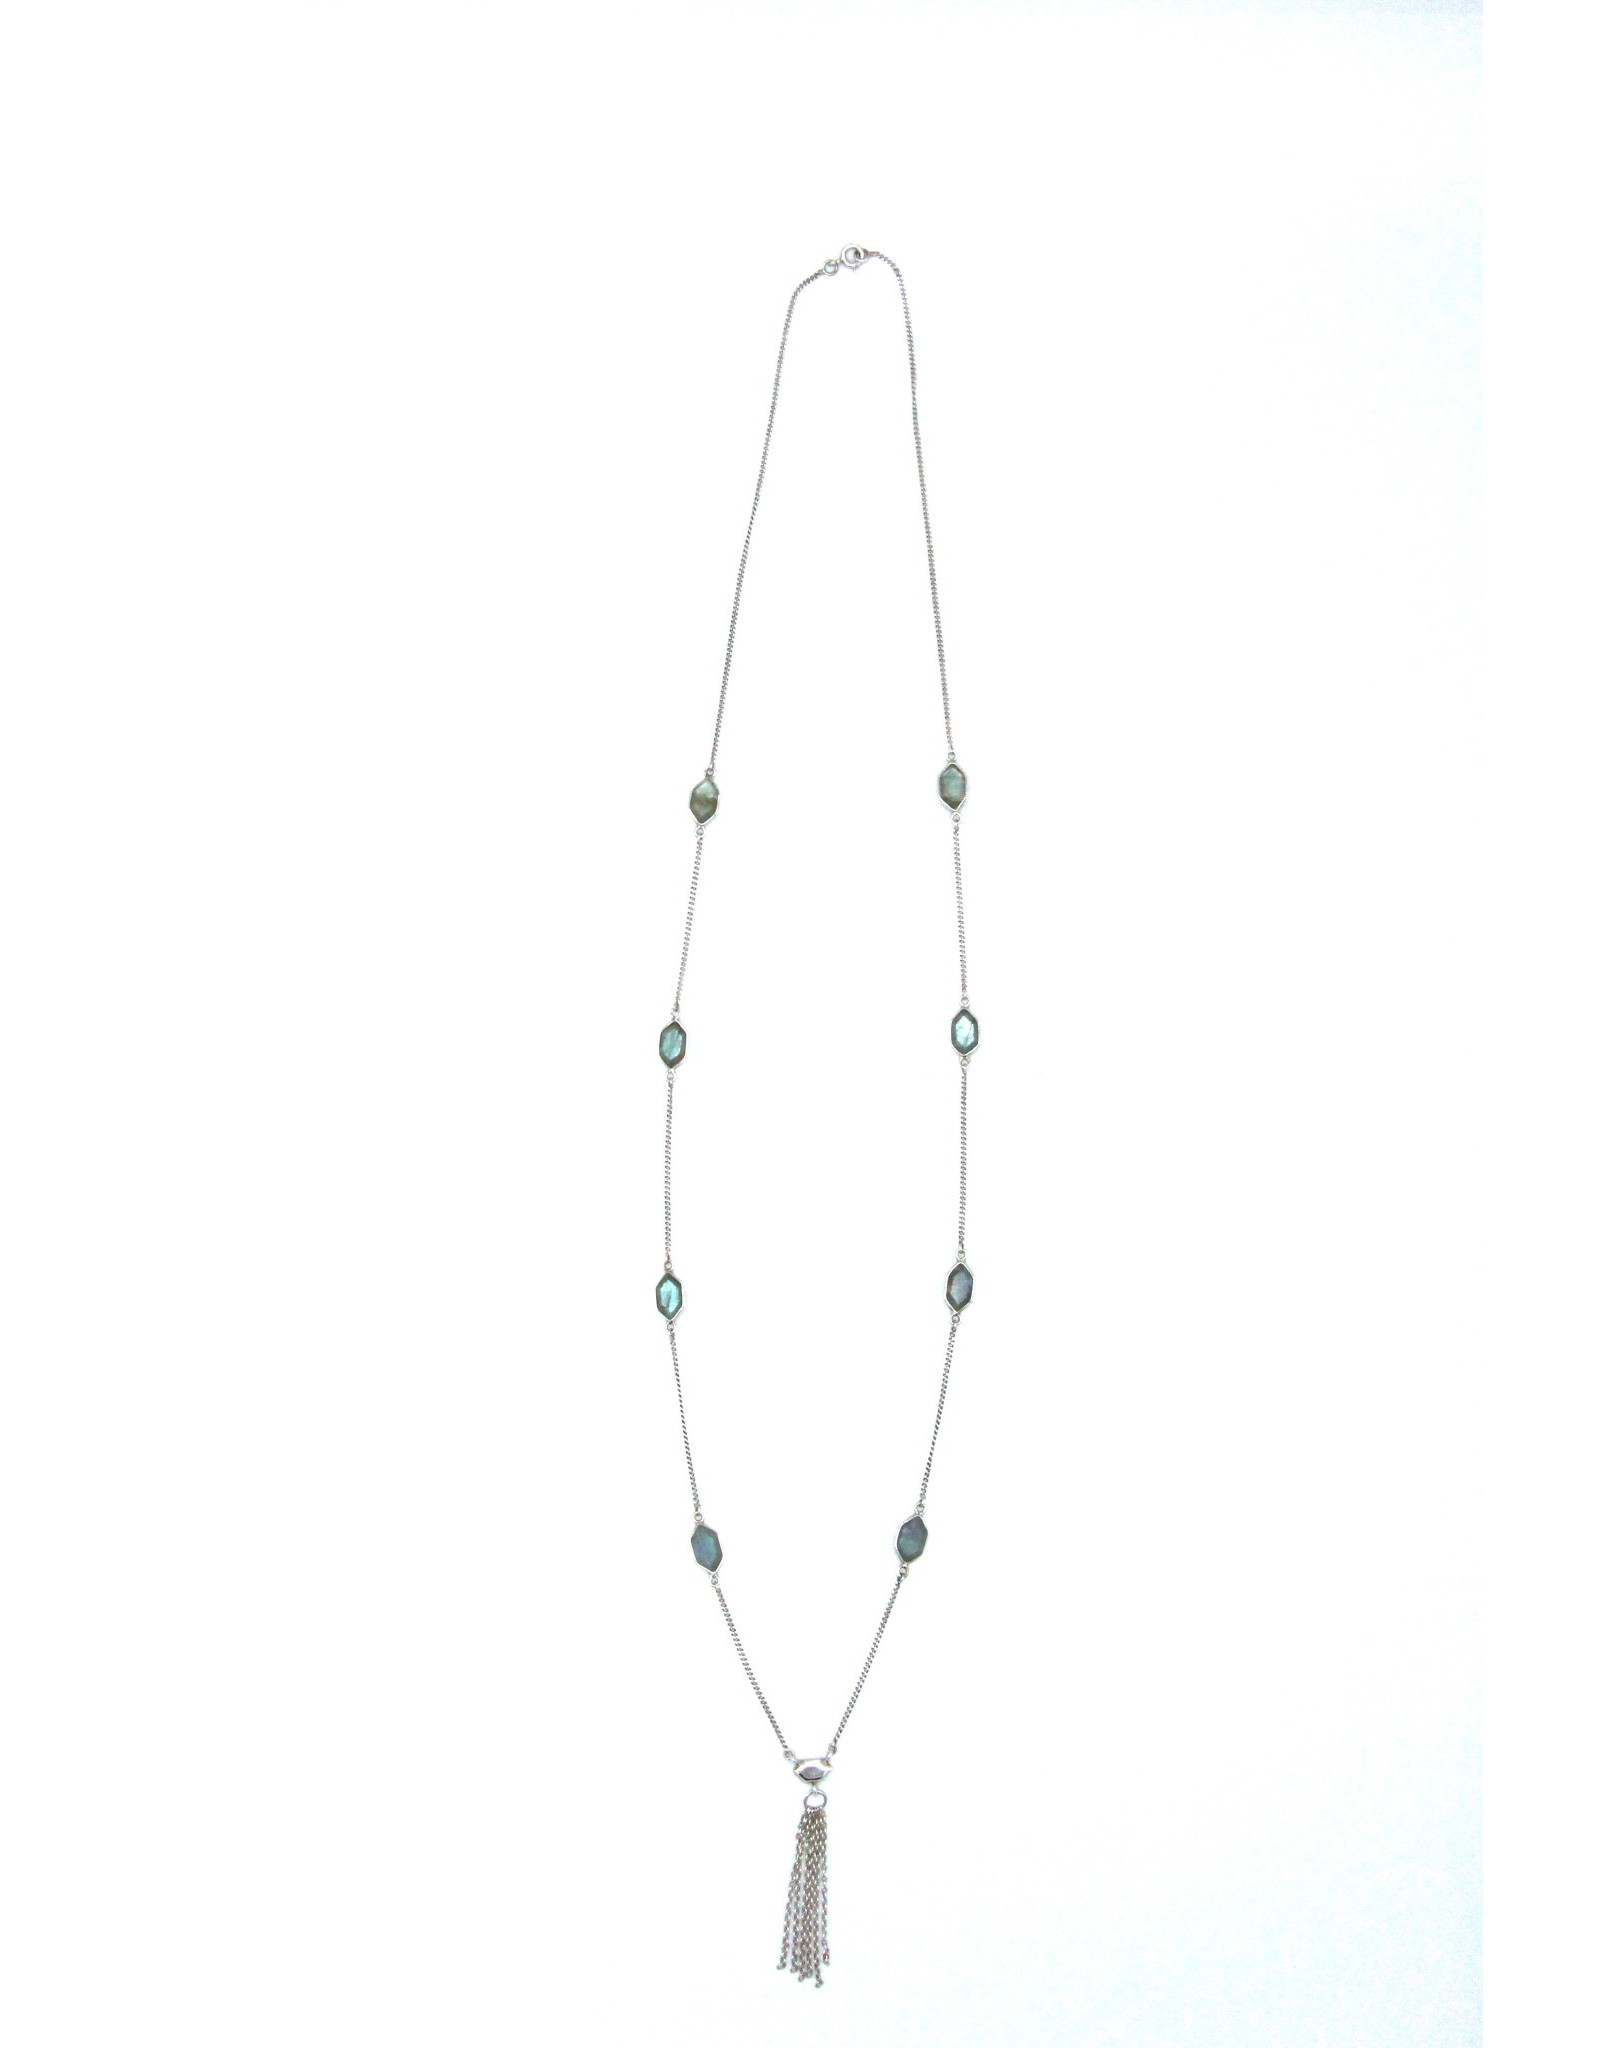 Labradorite Necklace - 102716